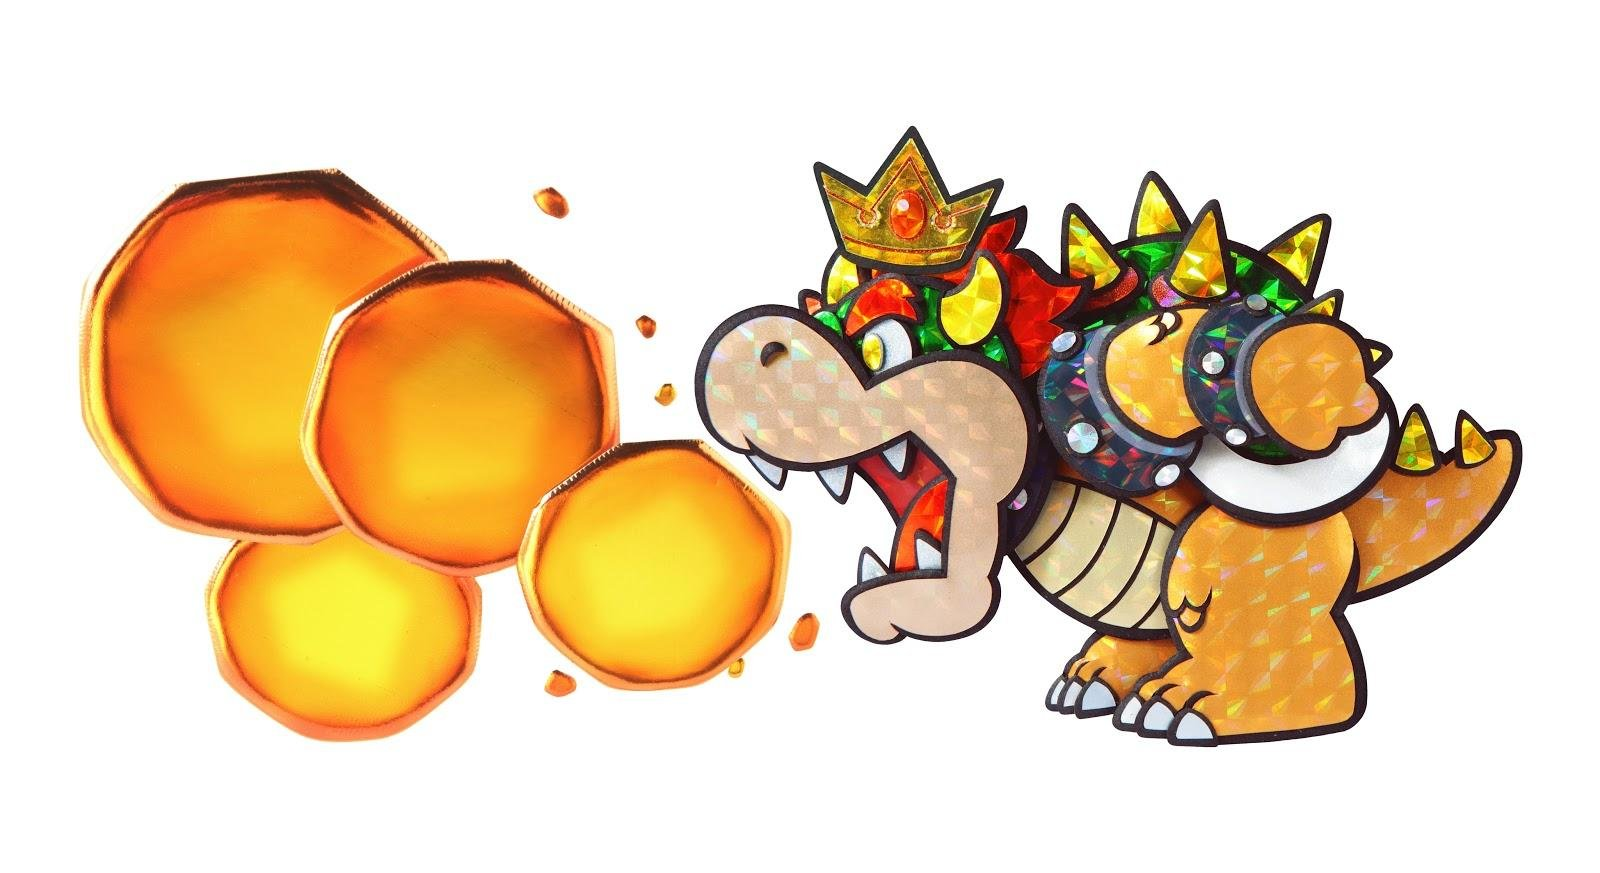 Paper Mario Sticker Star - Arte 6